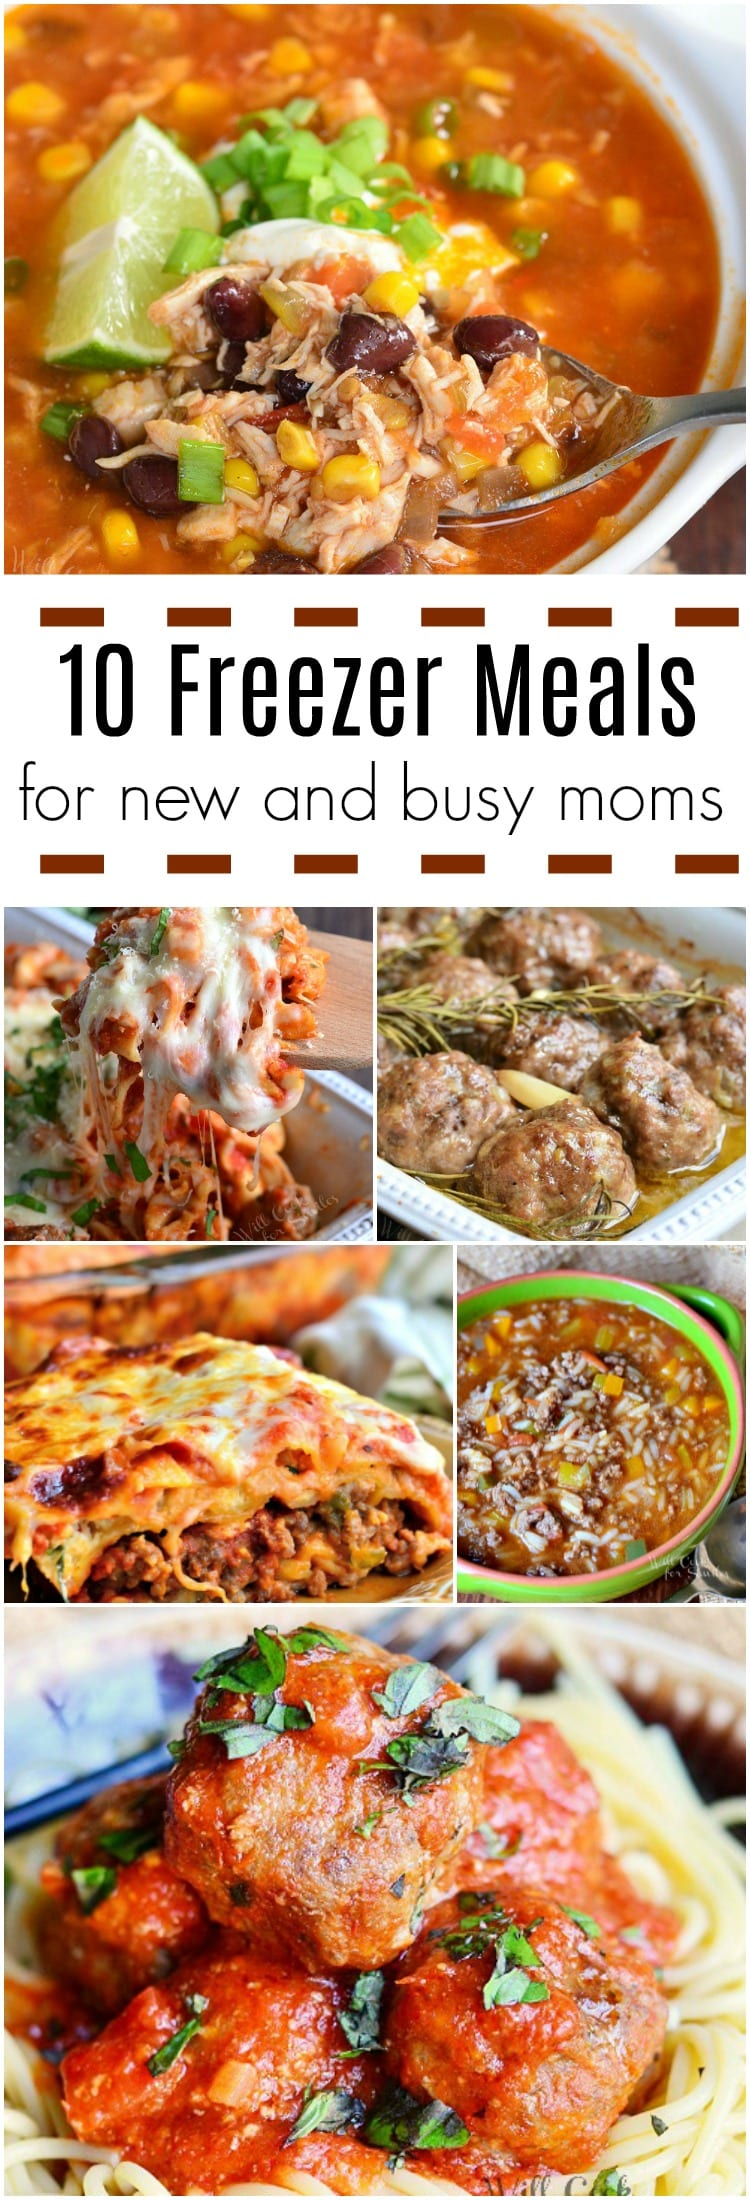 10 Freezer Meals for New and Busy Moms and Tips for Freezing Meals. Read tips about how to freeze food and what are the best kinds of meals to be frozen.